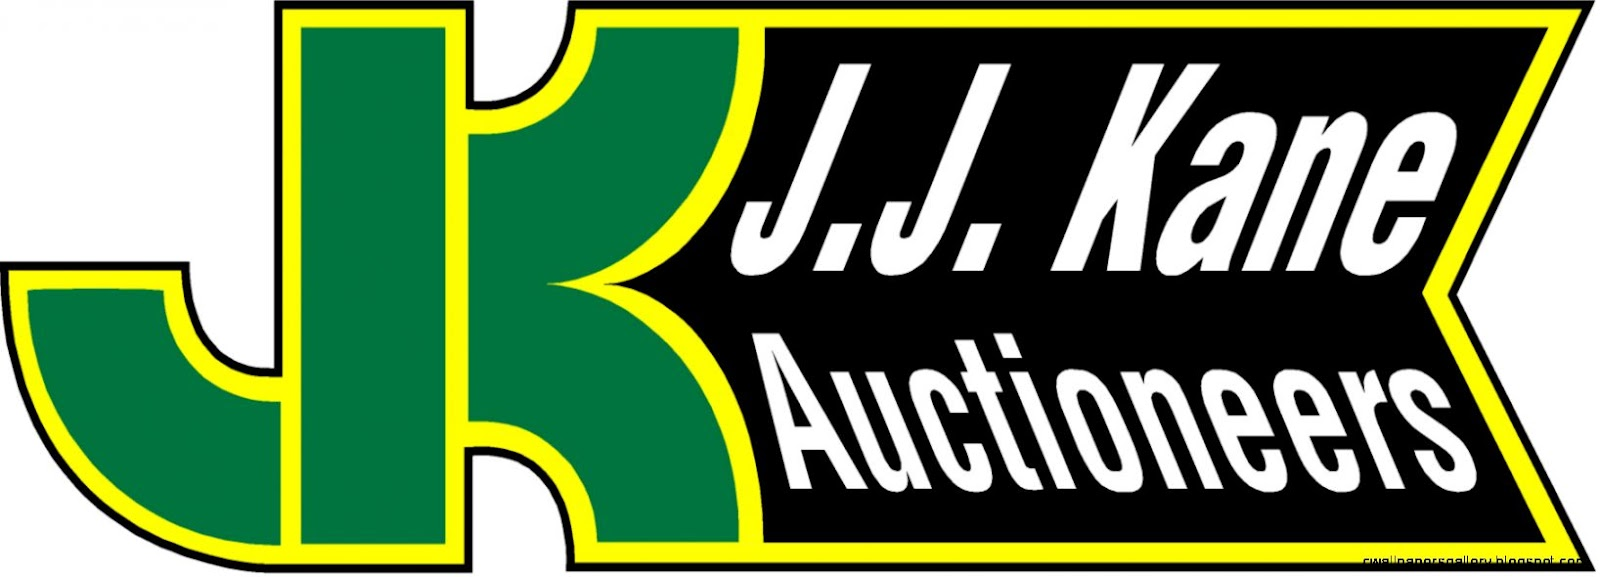 Plymouth Meeting PA Large Public Vehicle Auction Apr 12 2014